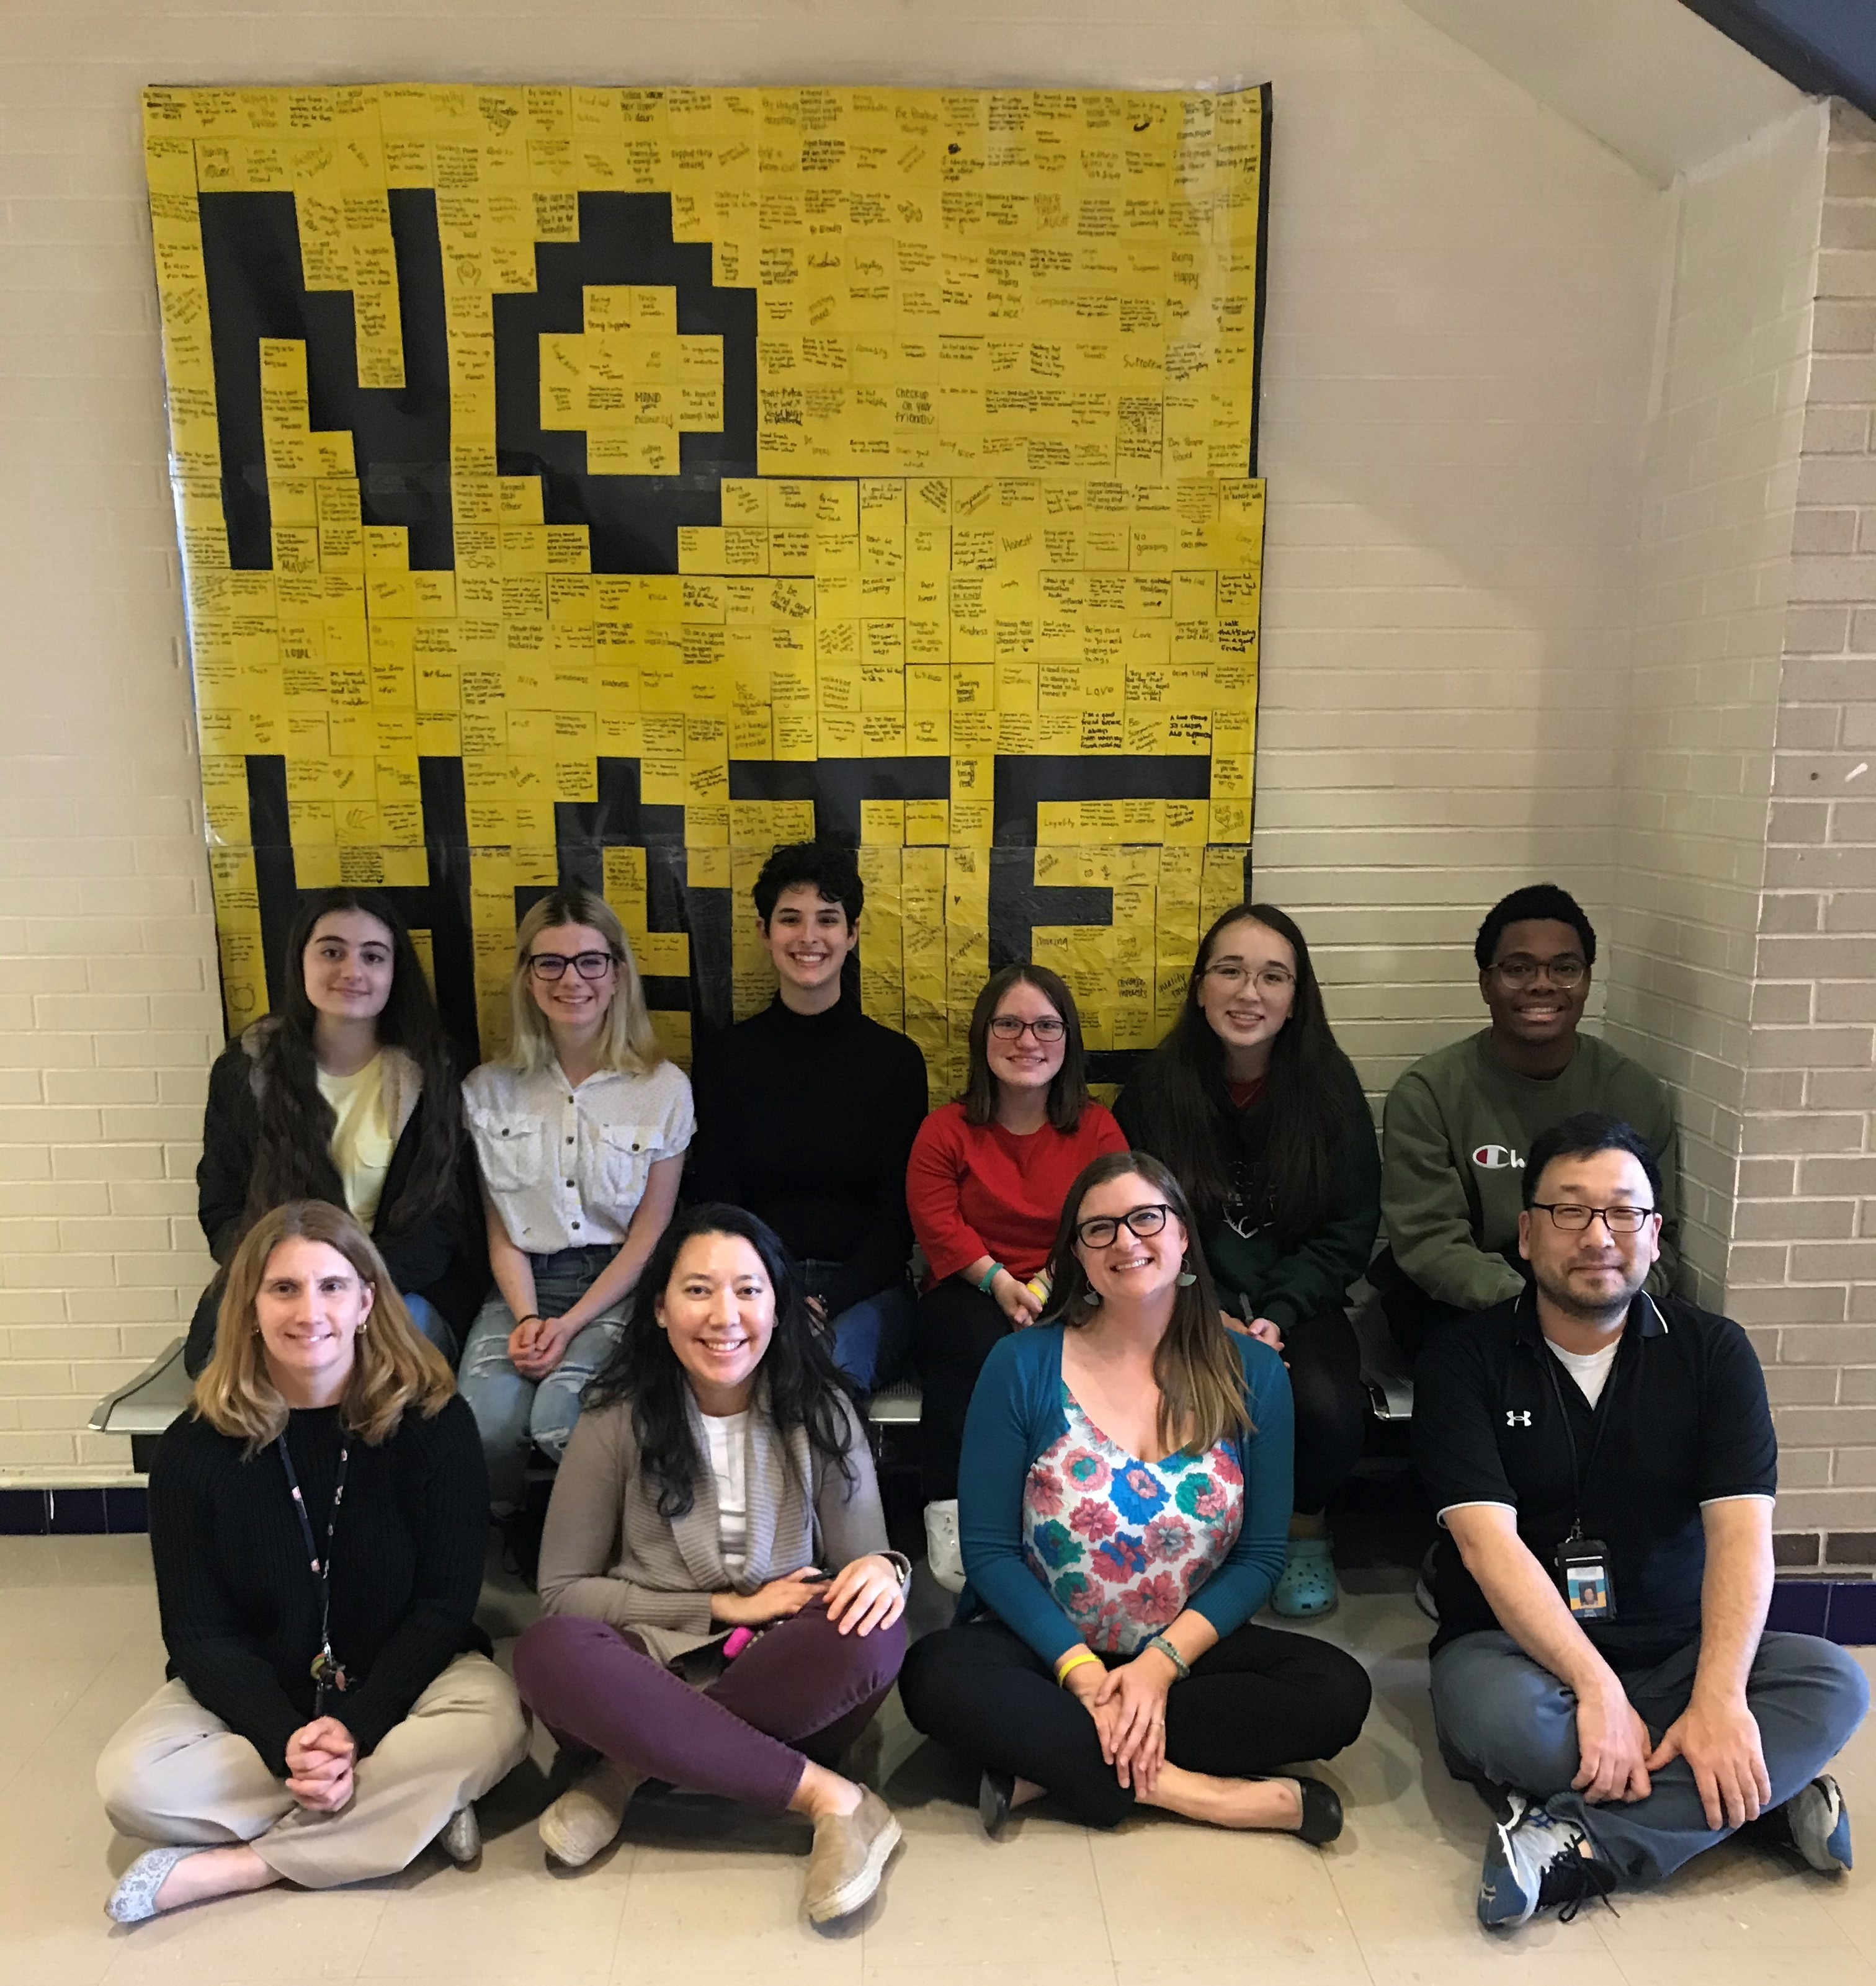 No Place for Hate Committee with Poster